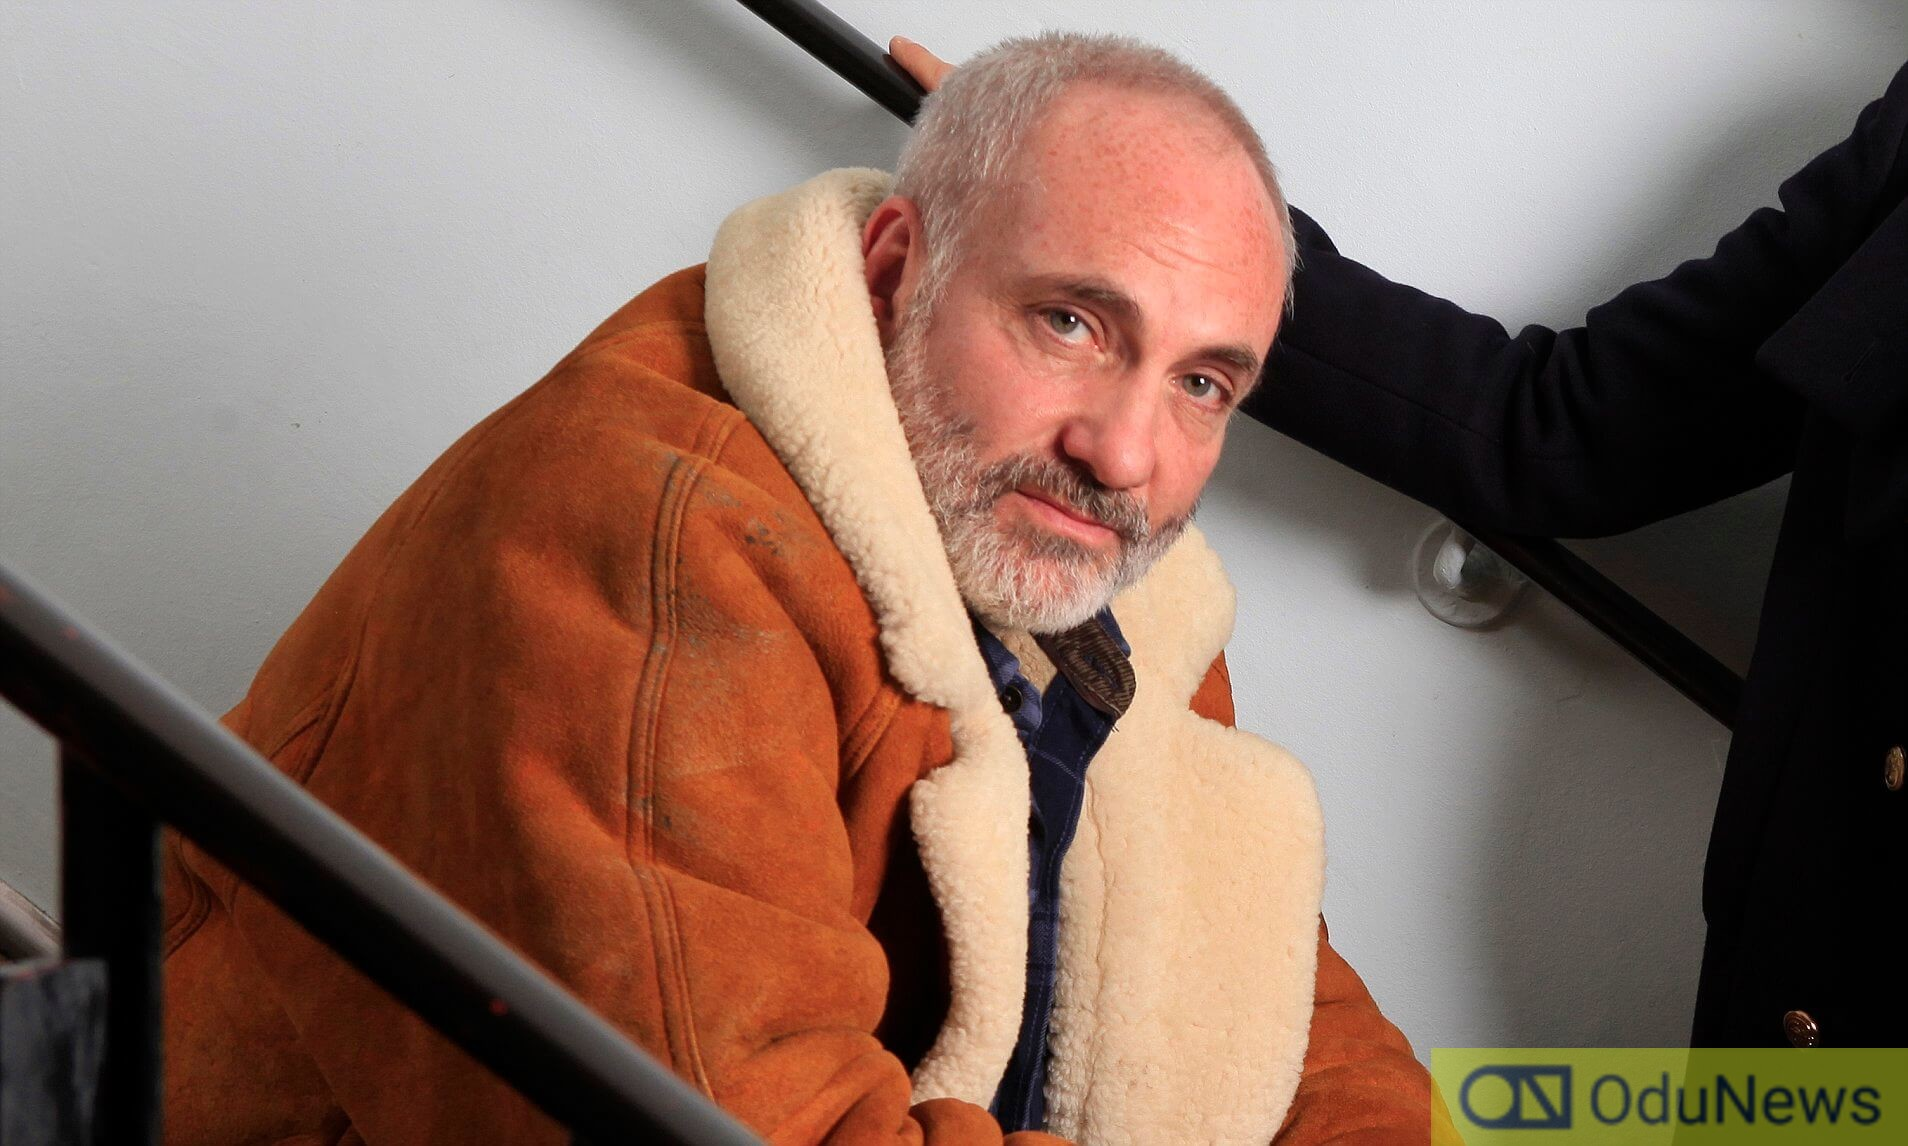 Kim Bodnia's character has described as the oldest and most experienced witcher